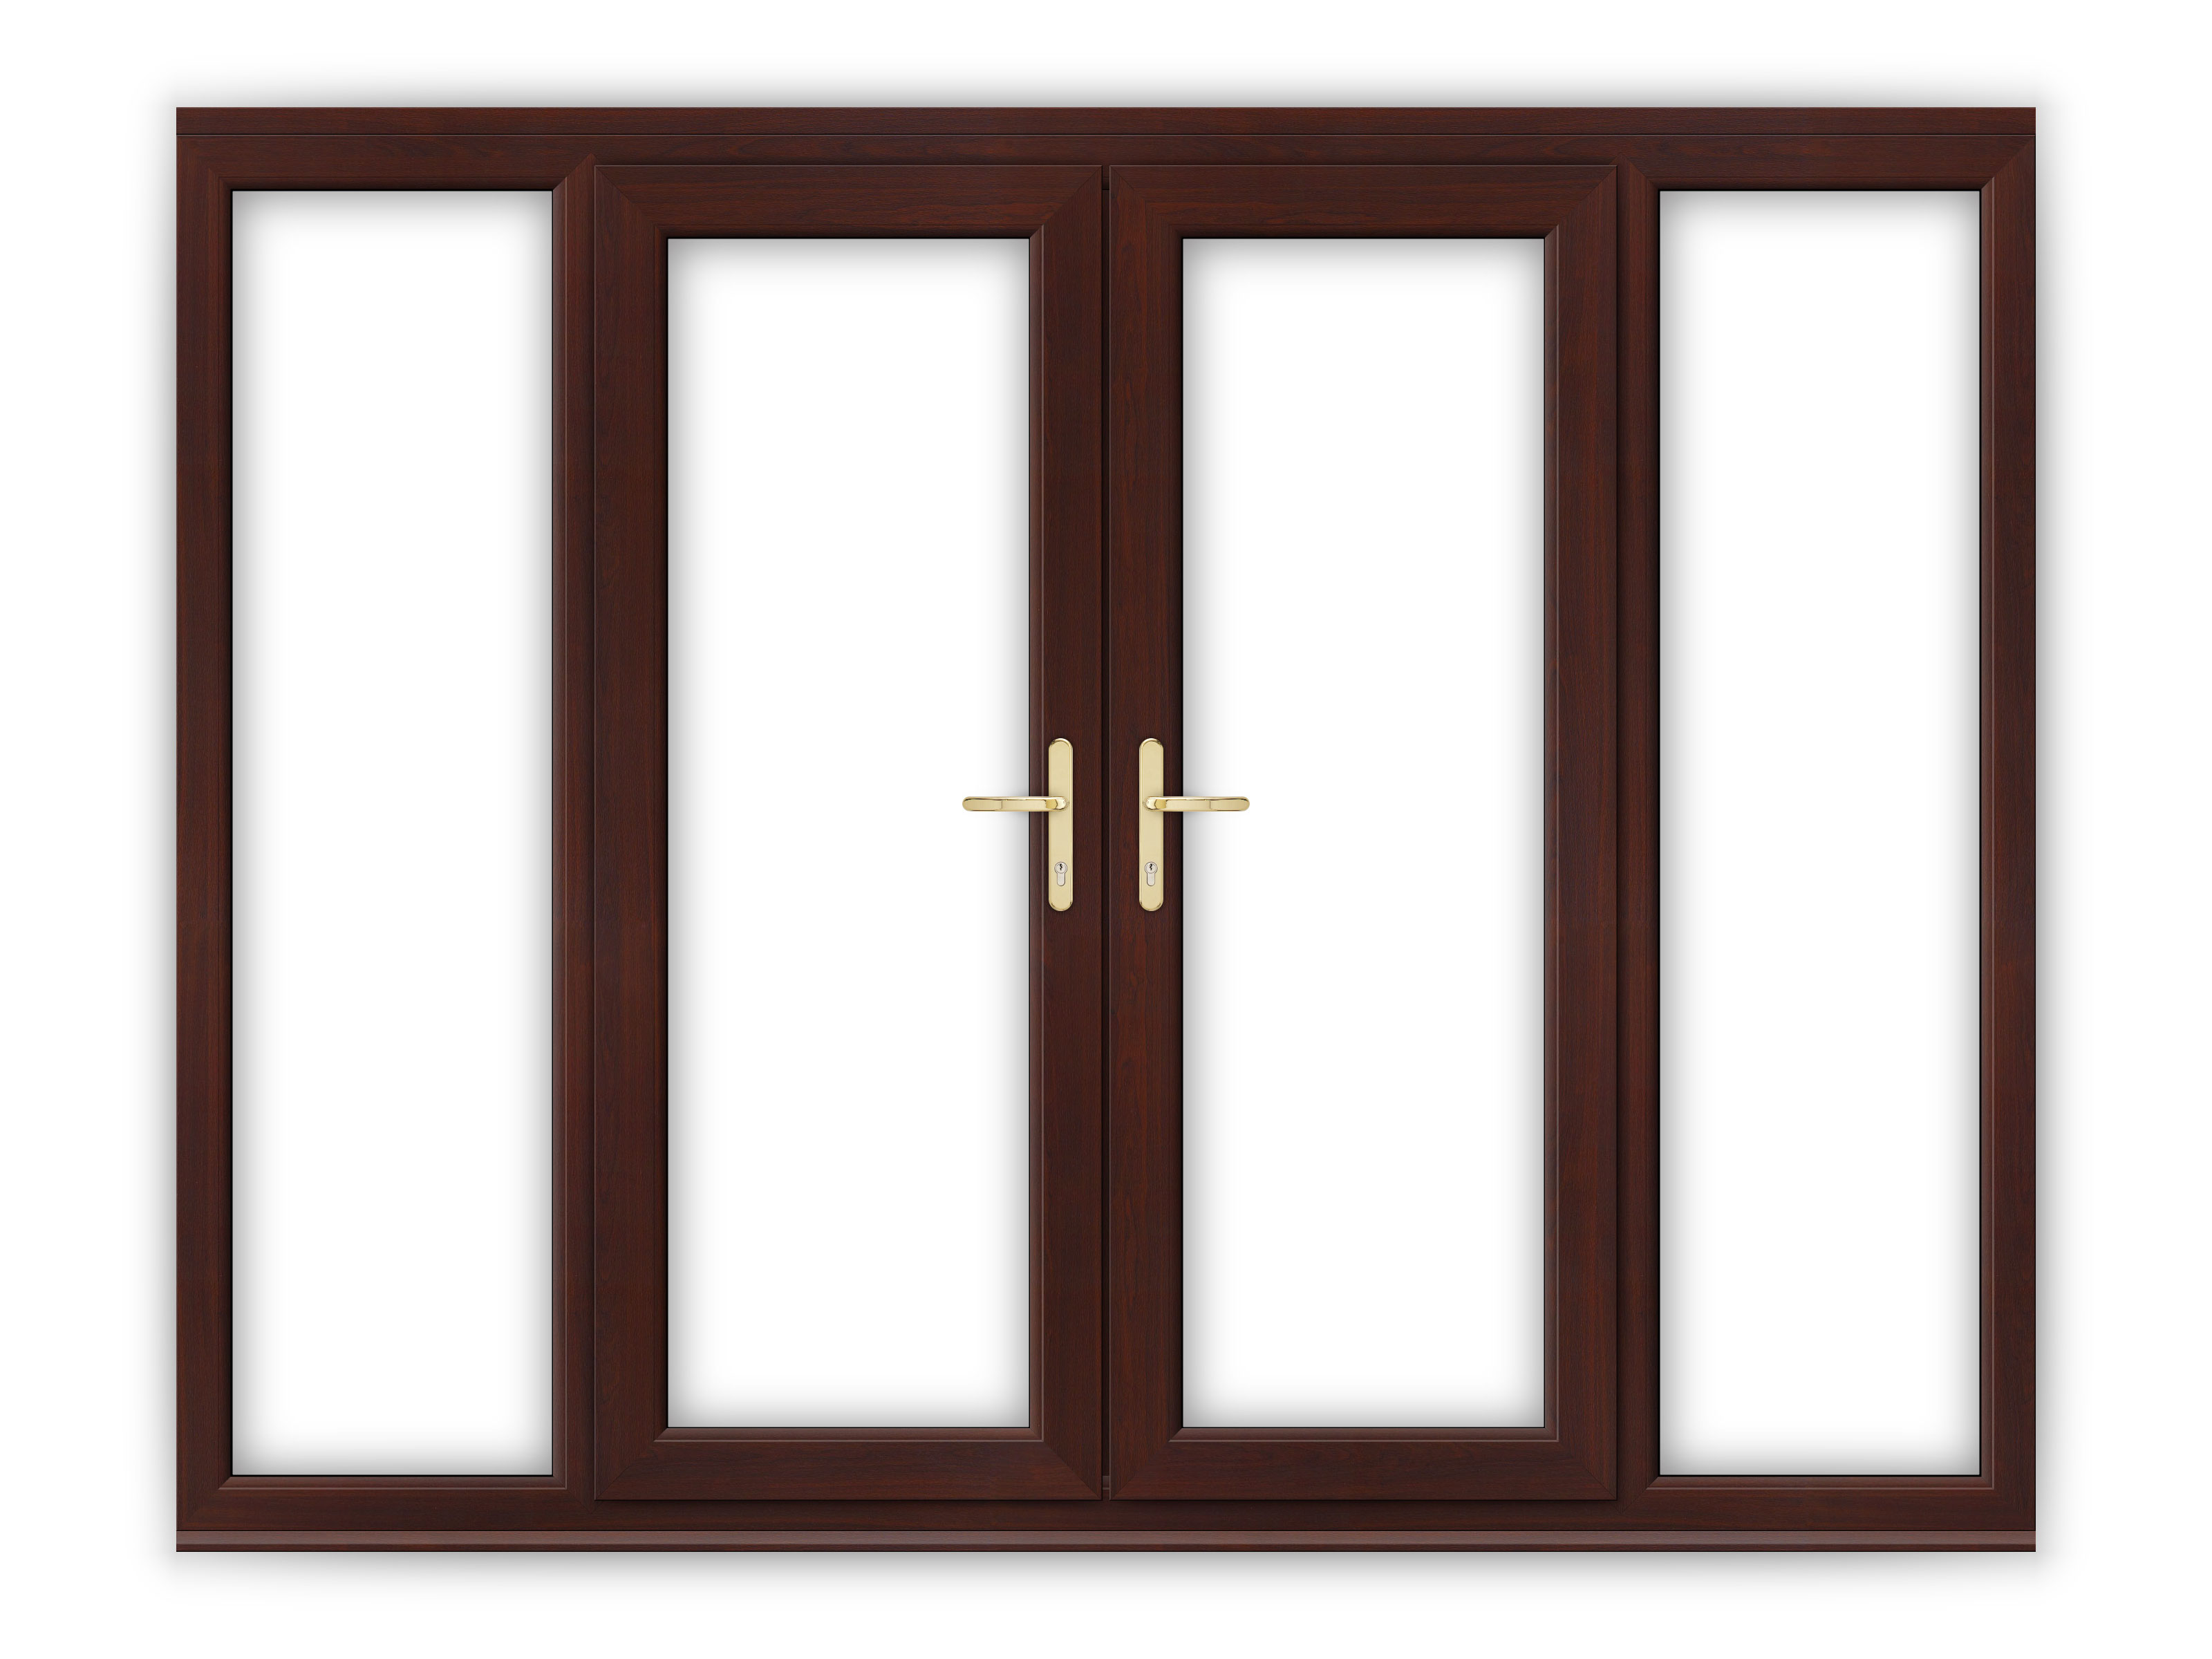 5ft rosewood upvc french doors with wide side panels for 5 ft french patio doors